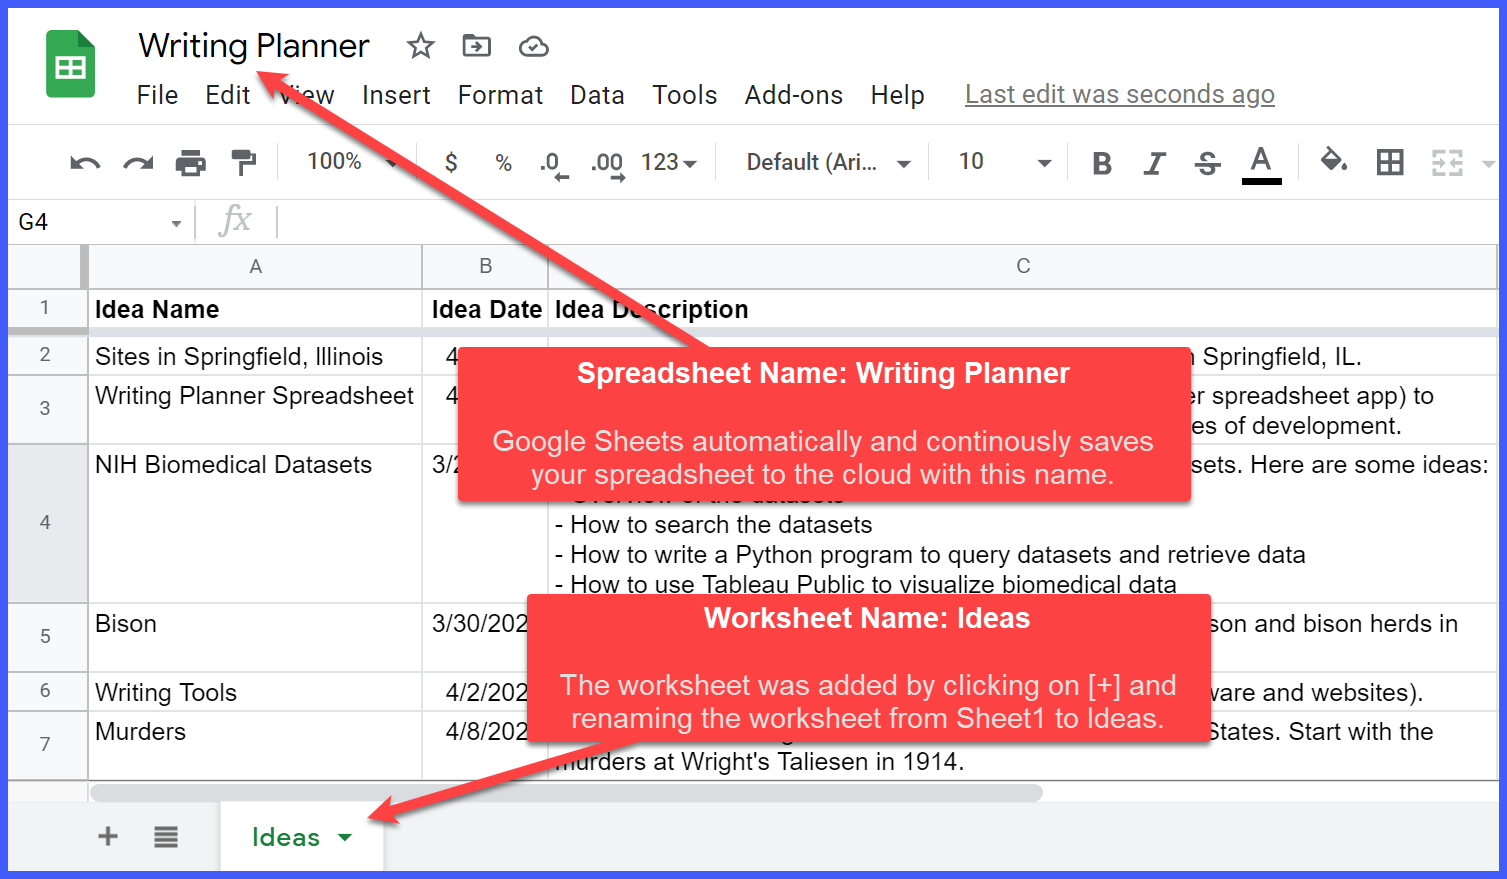 Writing Planner spreadsheet and Ideas worksheet in Google Sheets.